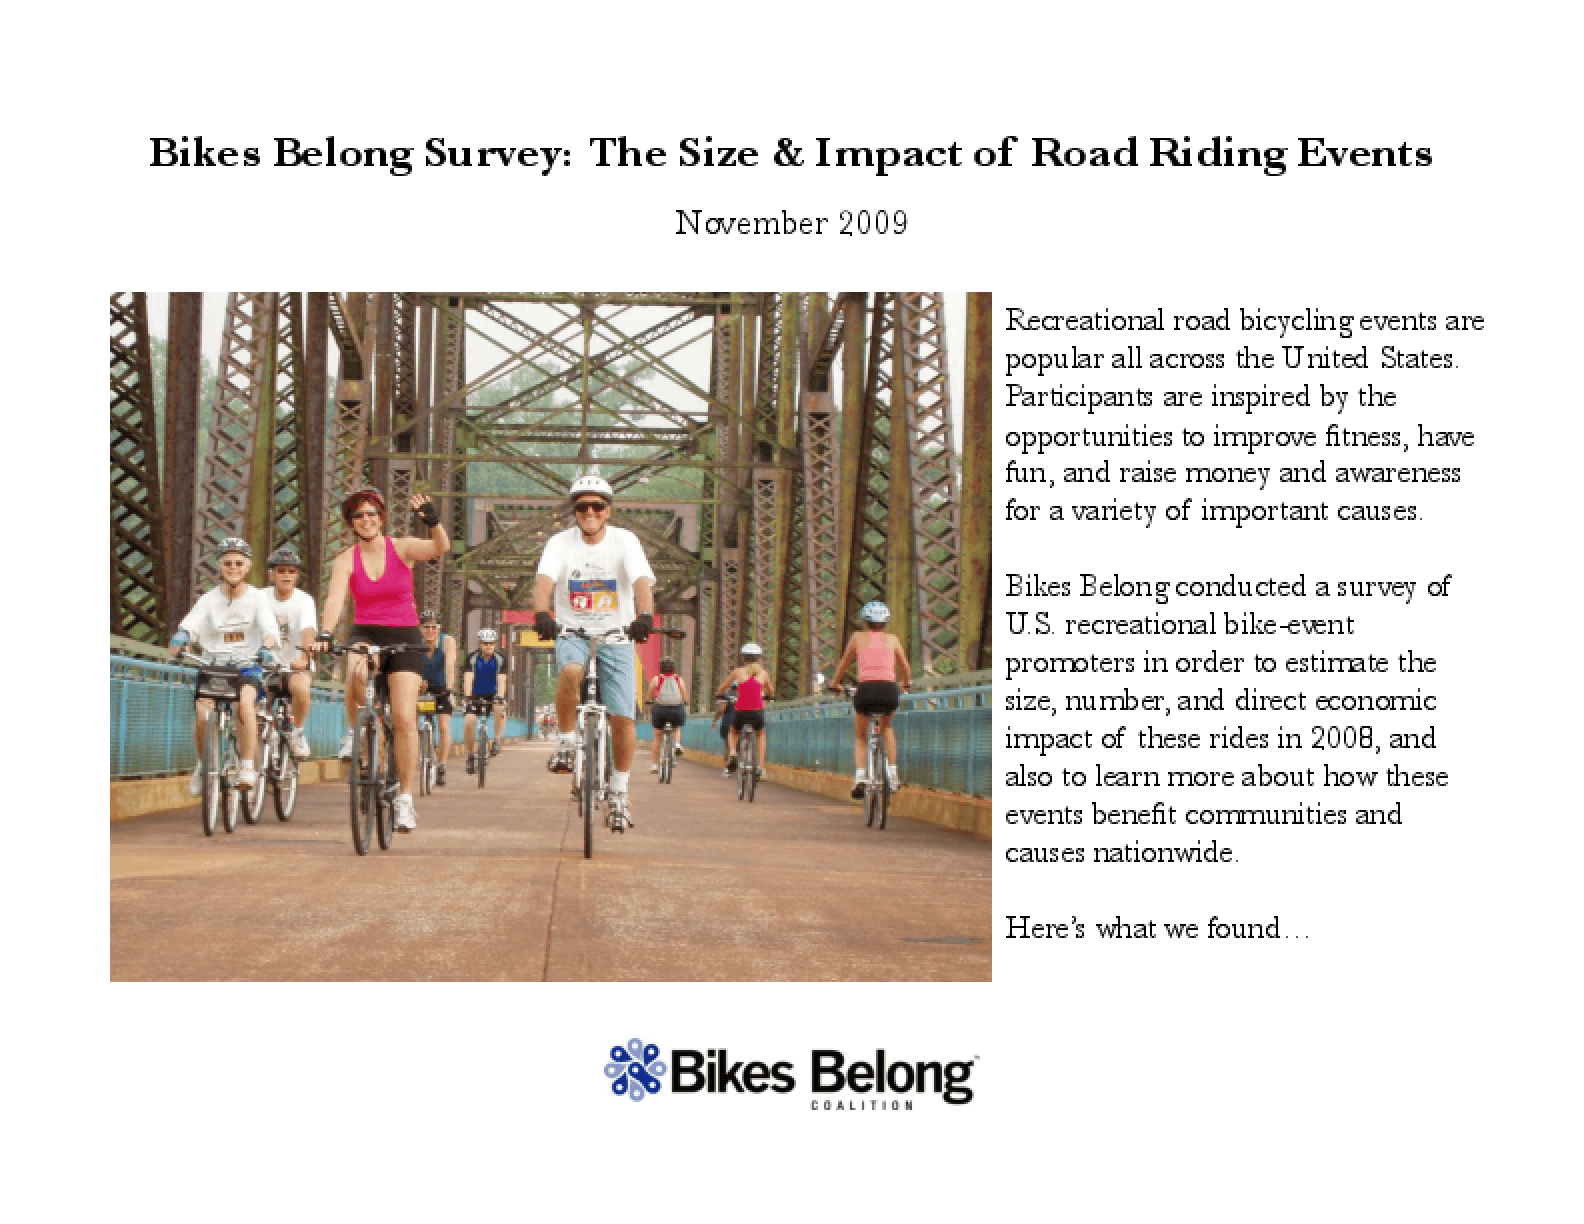 Bikes Belong Survey: The Size and Impact of Road Riding Events